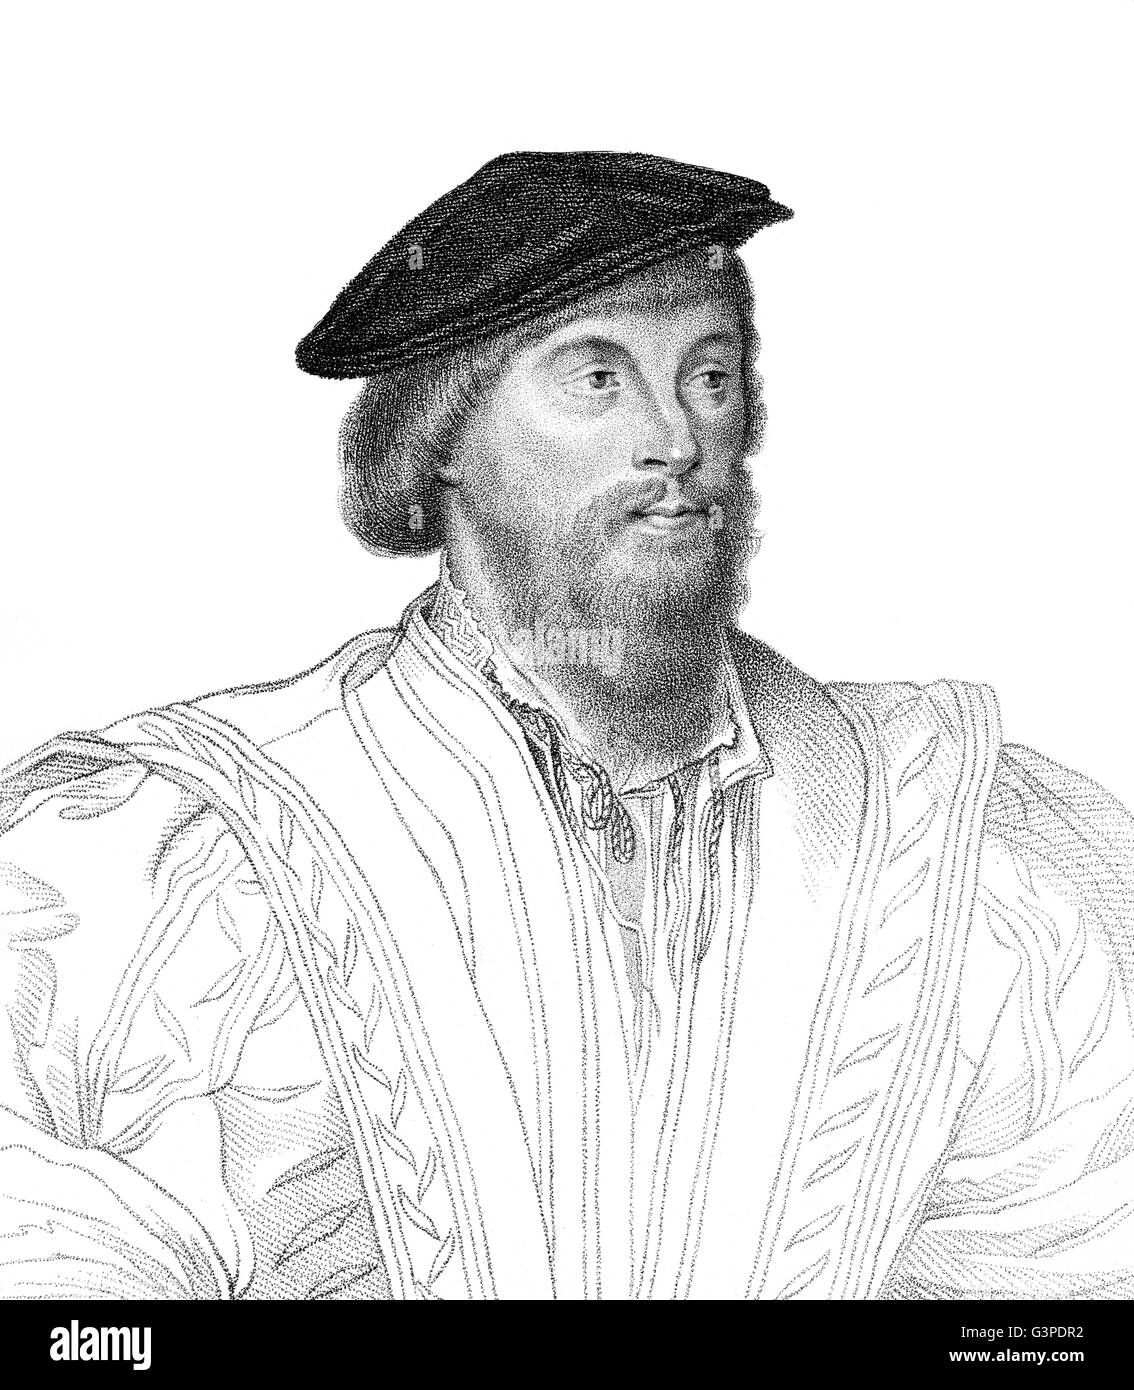 Nicholas Vaux, 1st Baron Vaux of Harrowden, c. 1460-1523, a soldier and courtier in England - Stock Image